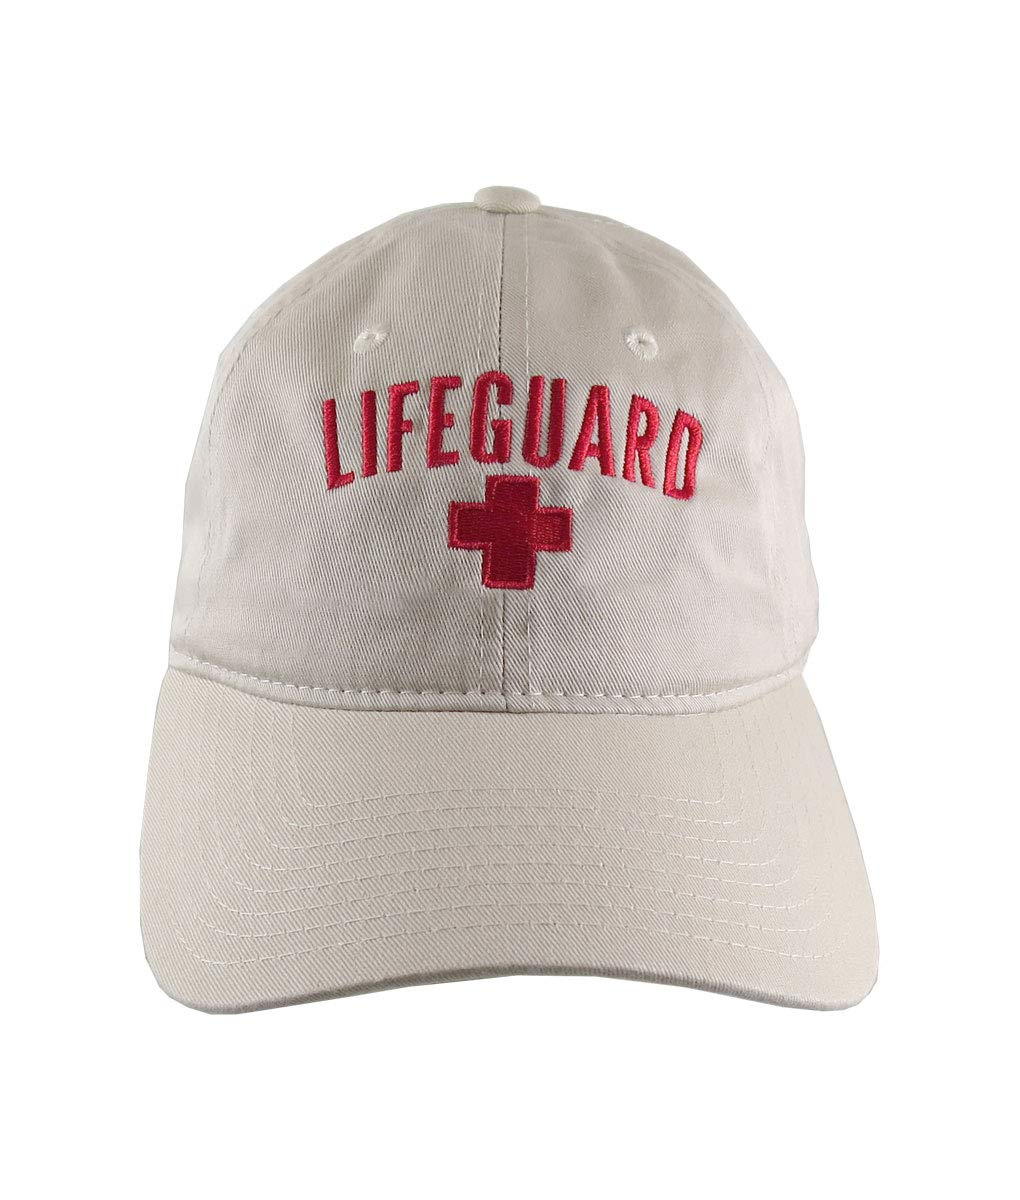 7637141e5a3aae Beach Swimming Pool Lifeguard Red Embroidery on Adjustable Beige  Unstructured Baseball Cap Dad Hat with Option to Personalize the Hat:  Amazon.ca: Handmade